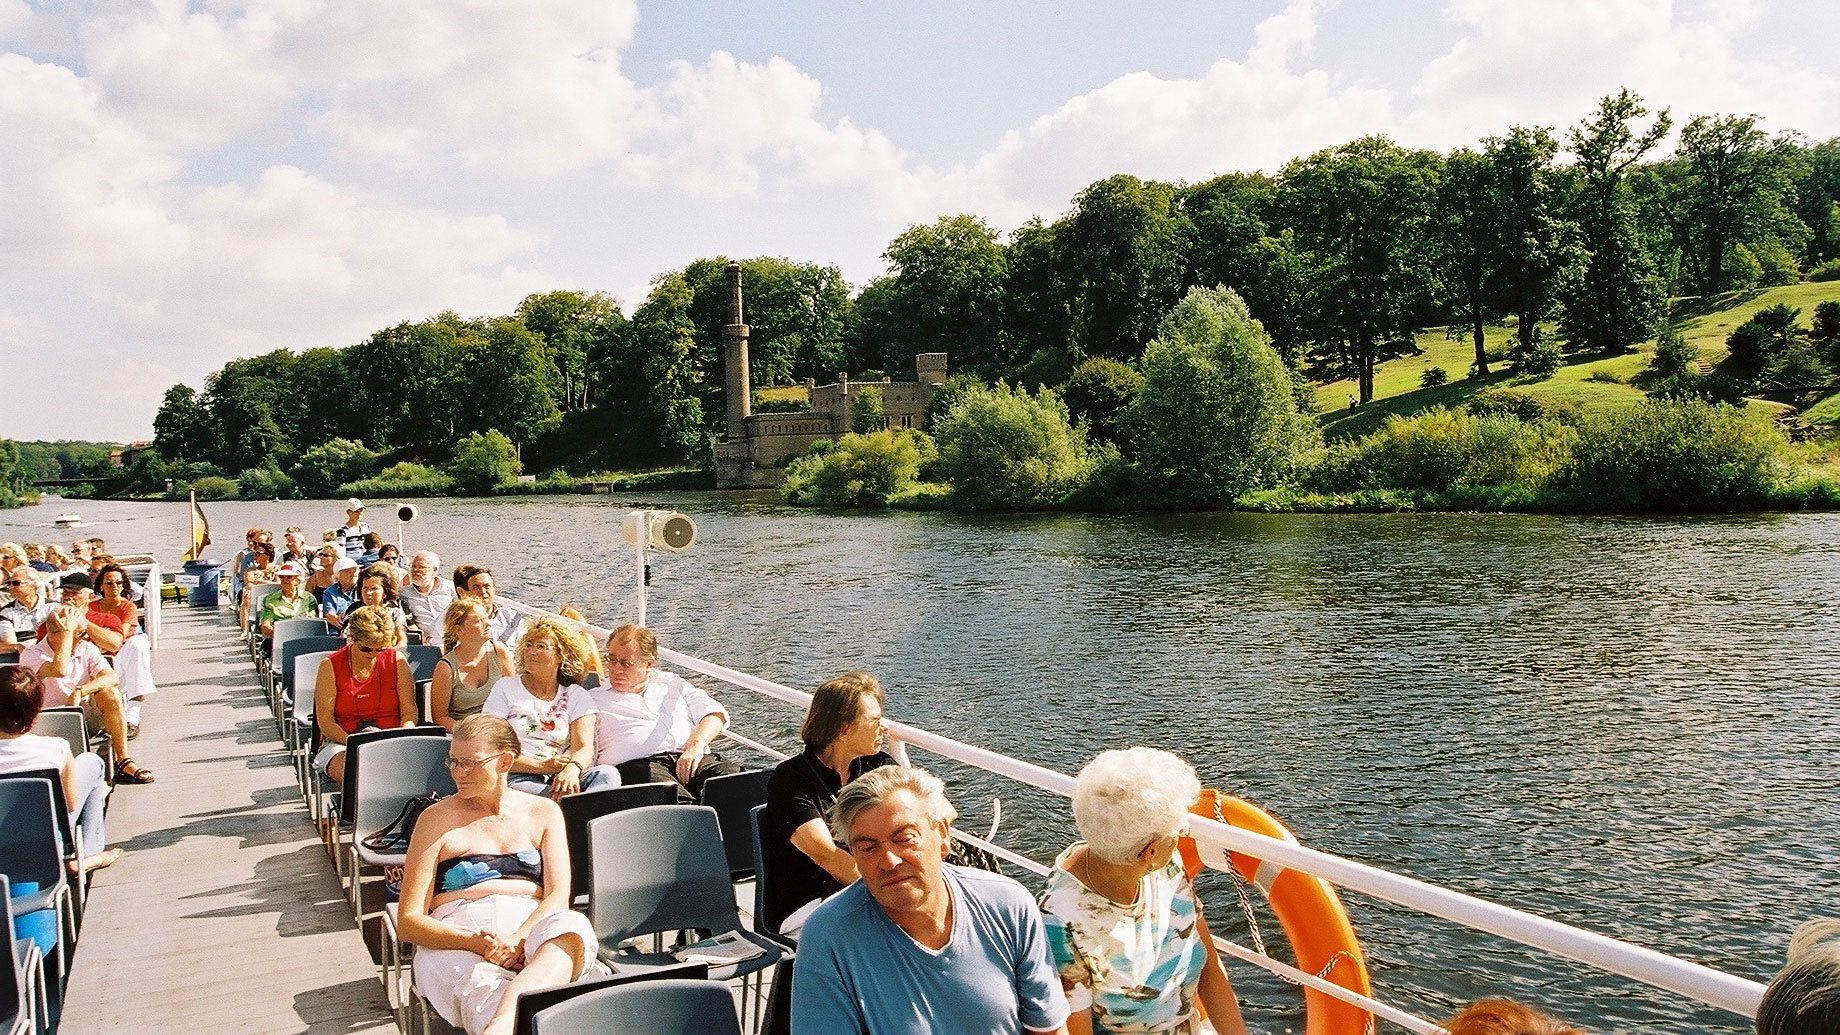 Cruising passengers enjoy the scenery on tour boat in Berlin.